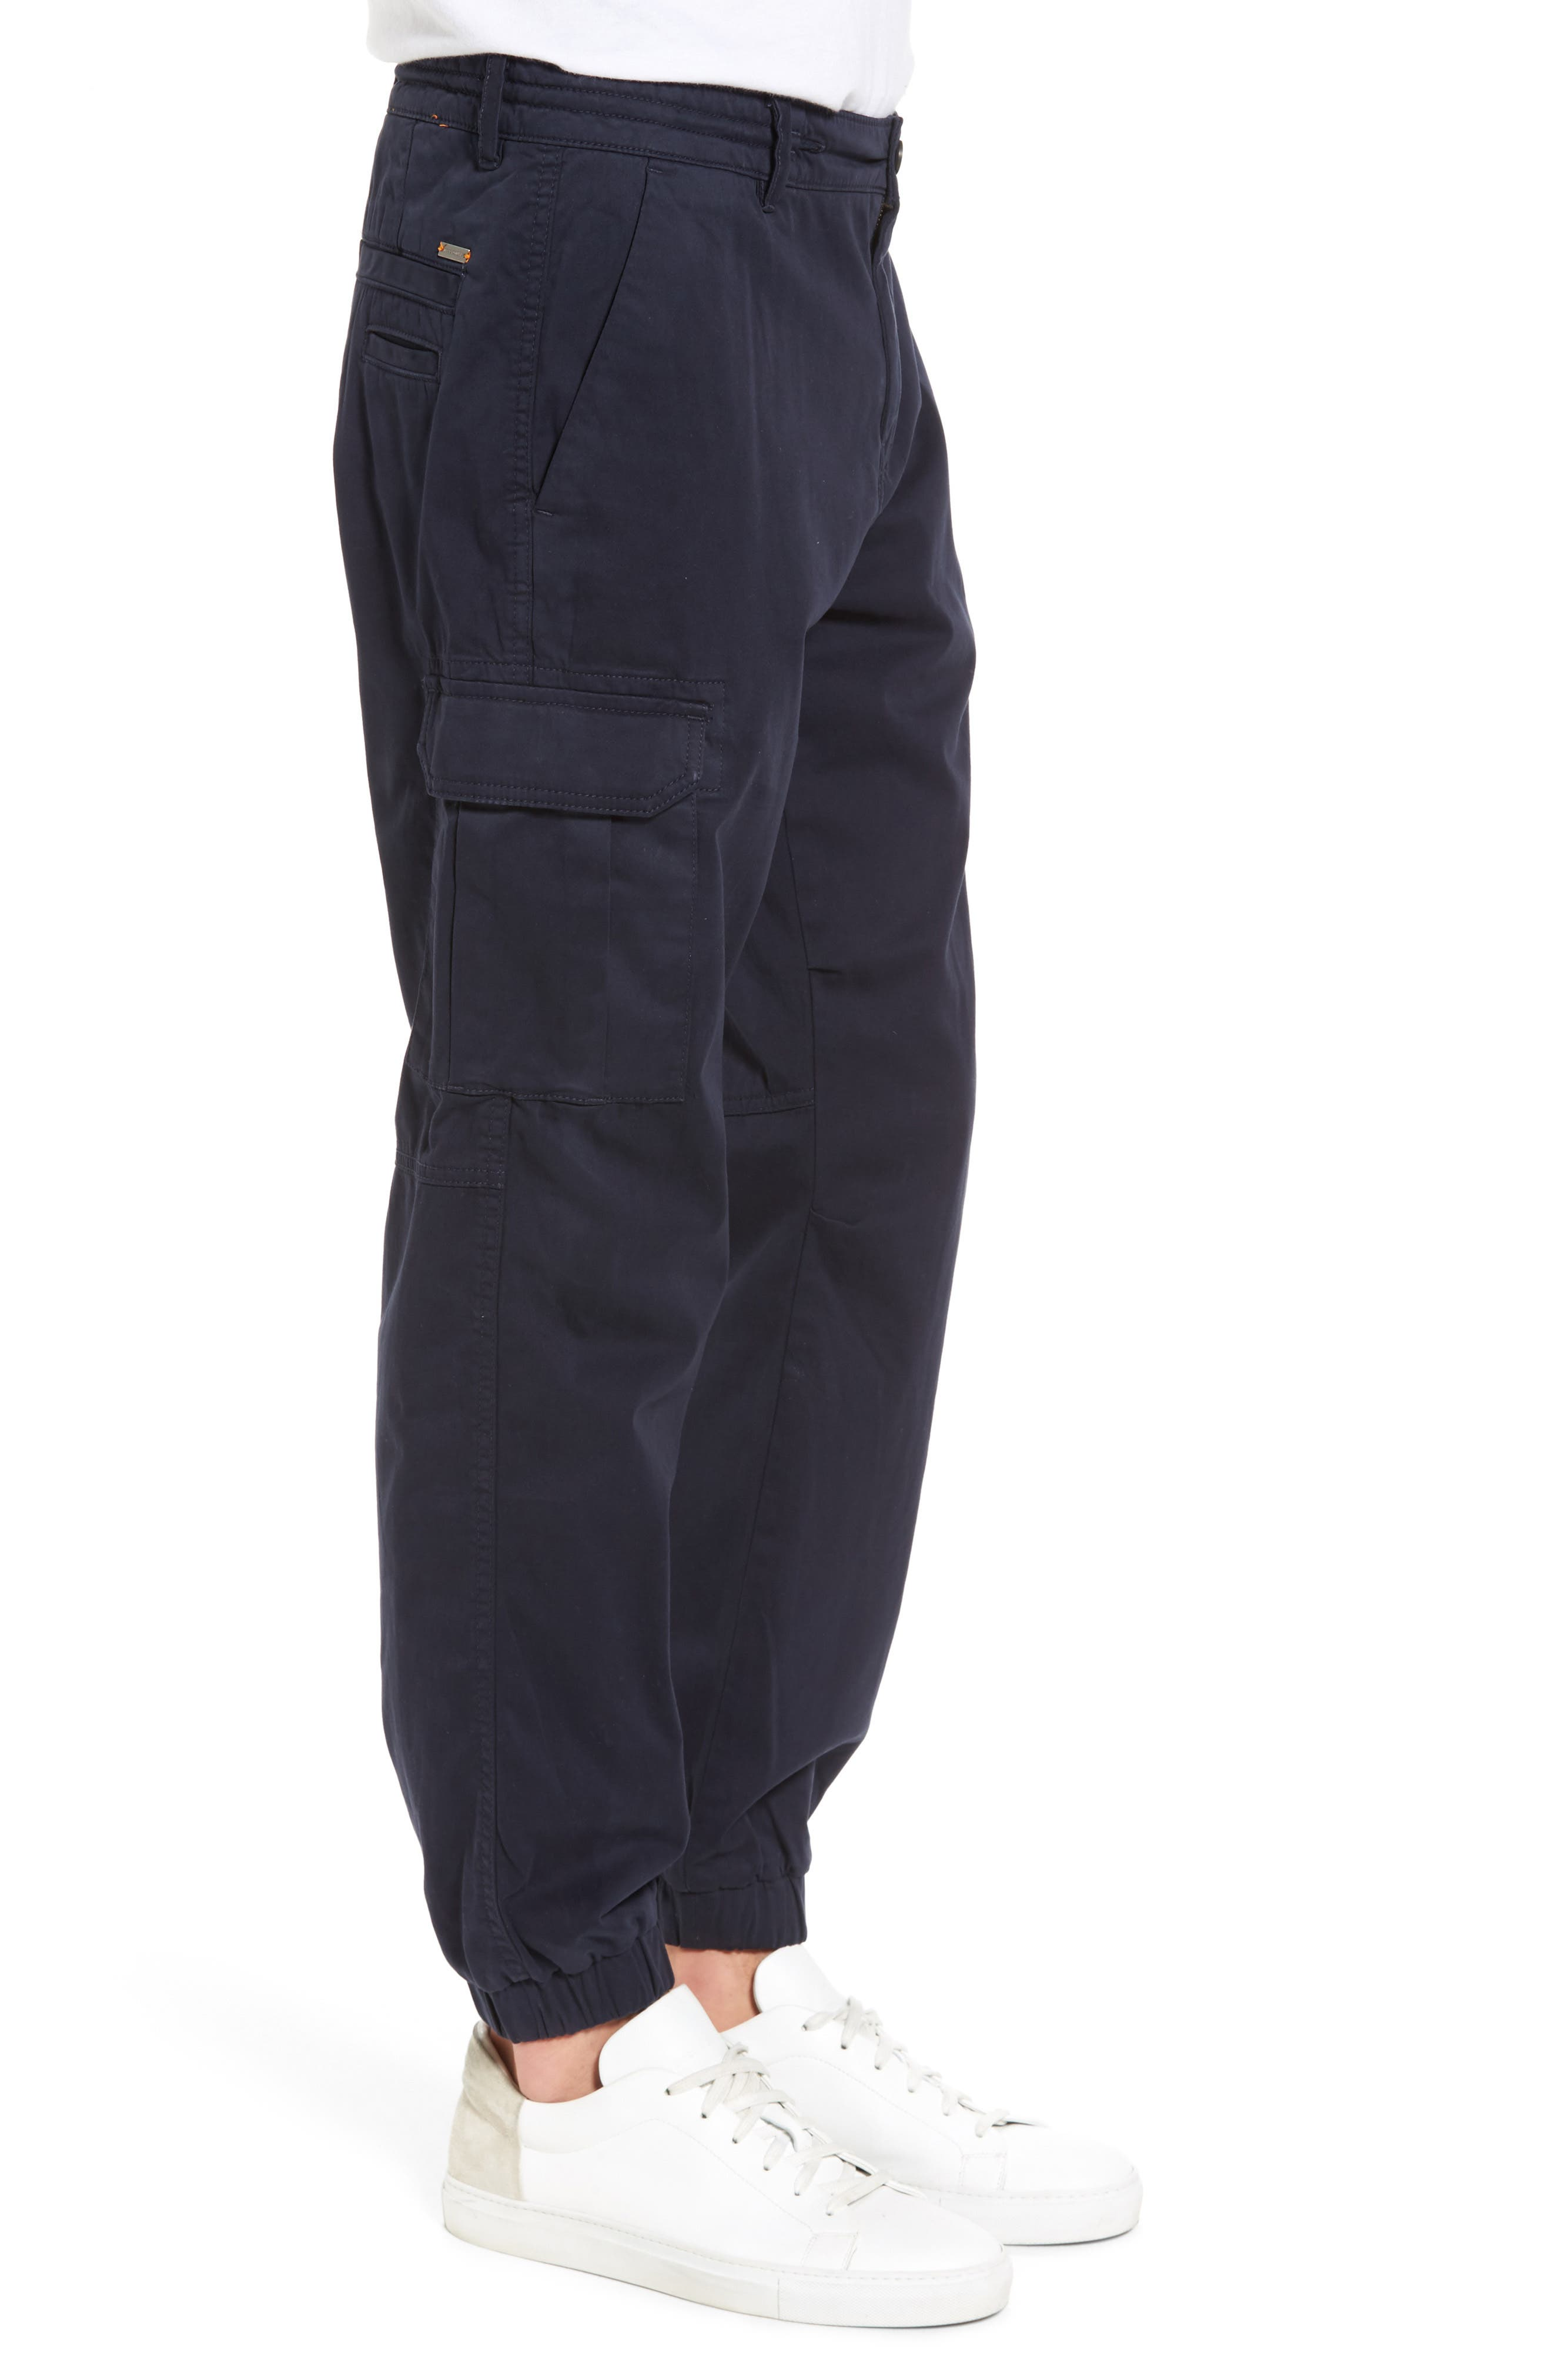 Shay 2 Cargo Pants,                             Alternate thumbnail 3, color,                             404